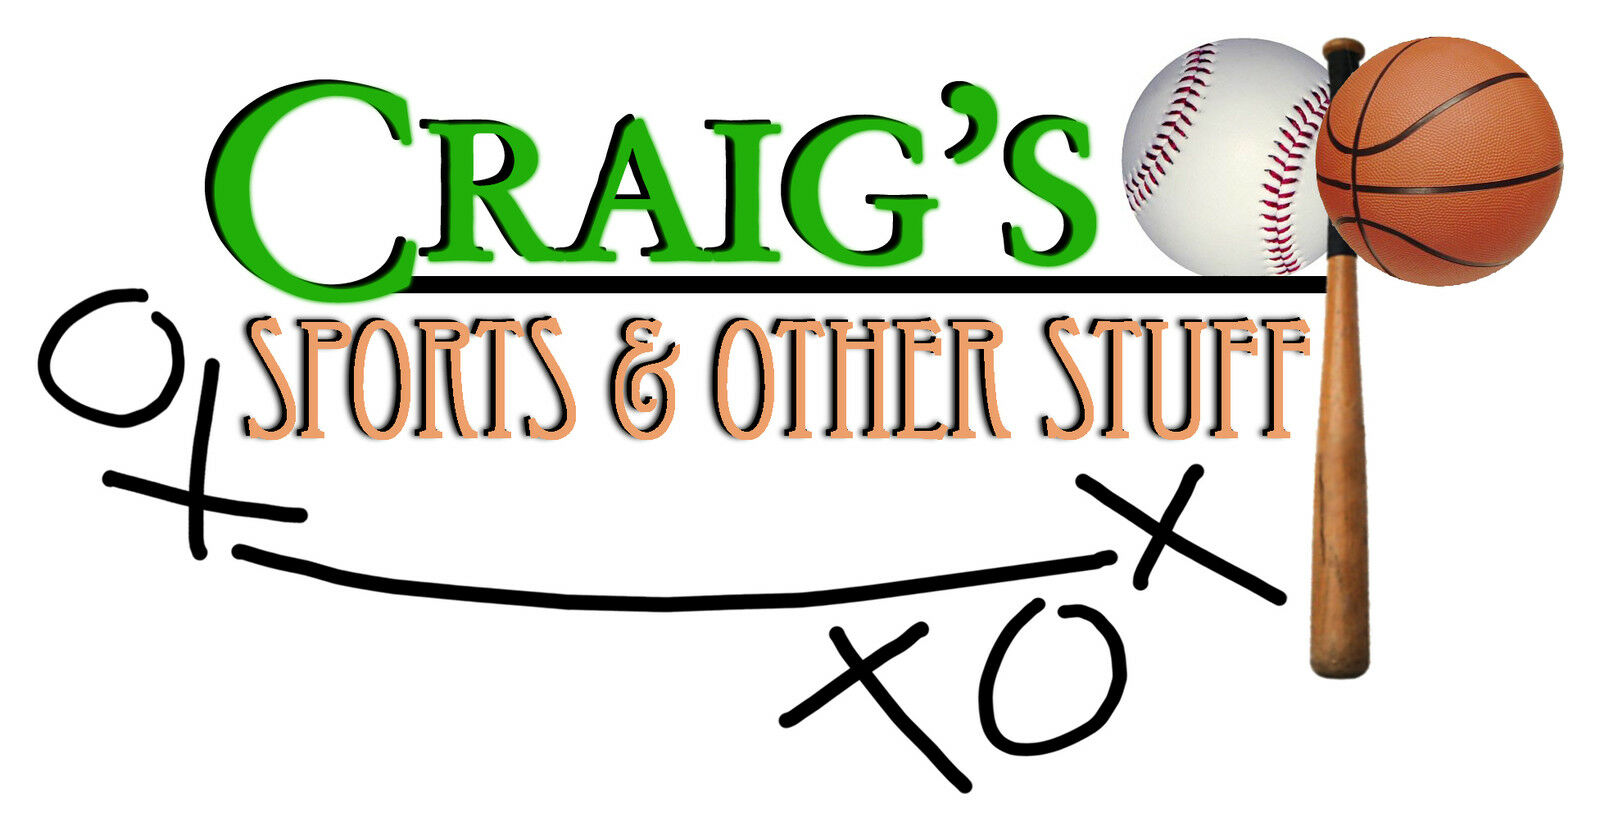 Craigs Sports and Other Stuff